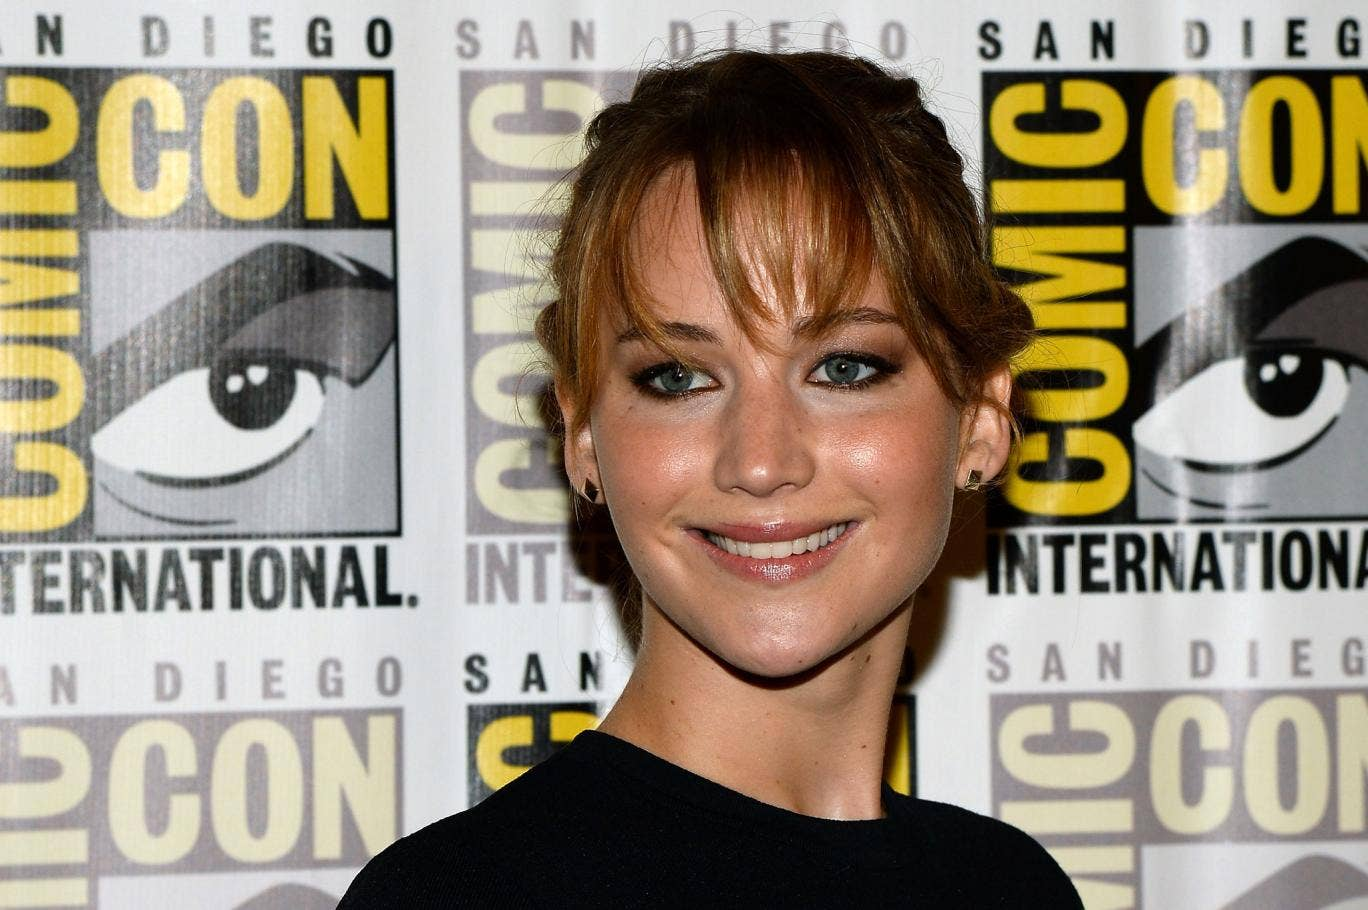 Jennifer Lawrence is one of Hollywood's most in-demand actresses